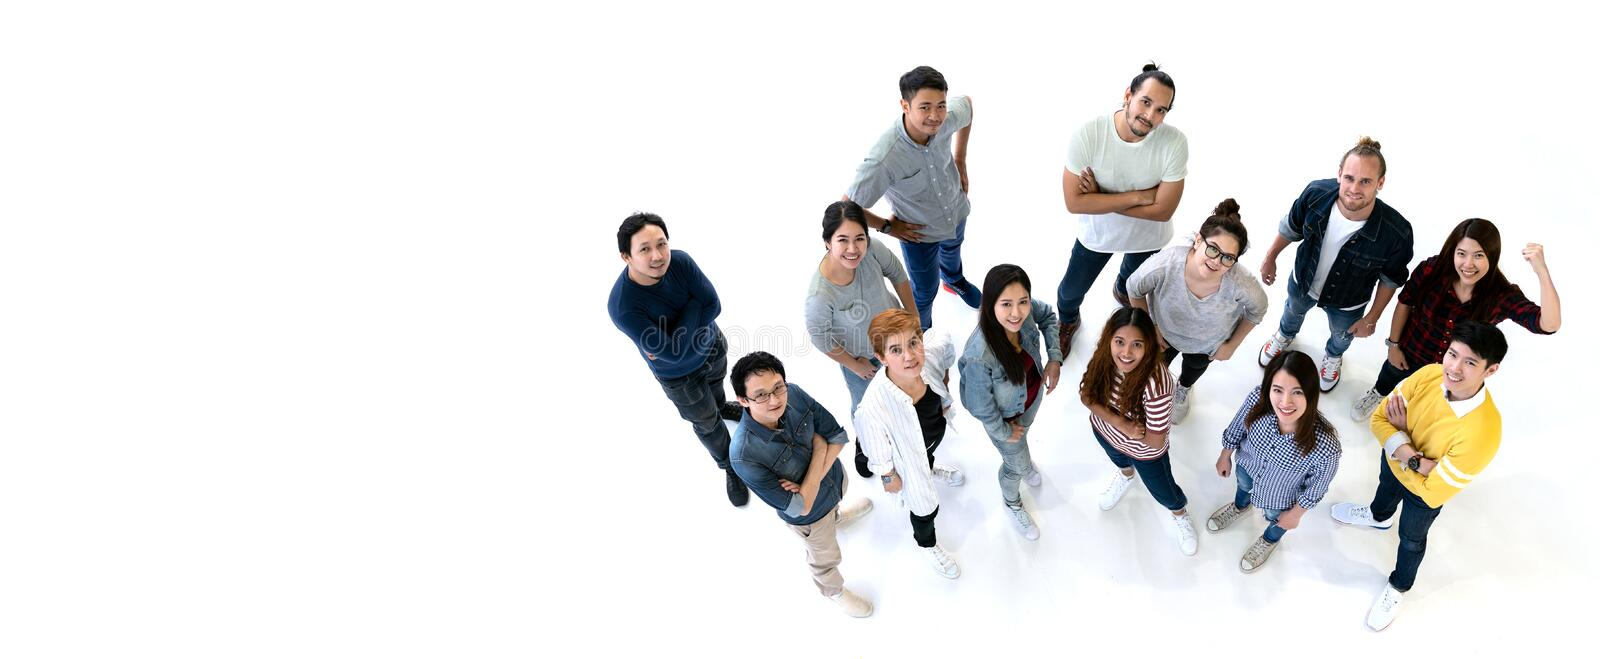 Group of Diversity People Team smiling with top view. Ethnicity group of creative teamwork in casual happy lifestyle together with royalty free stock photo